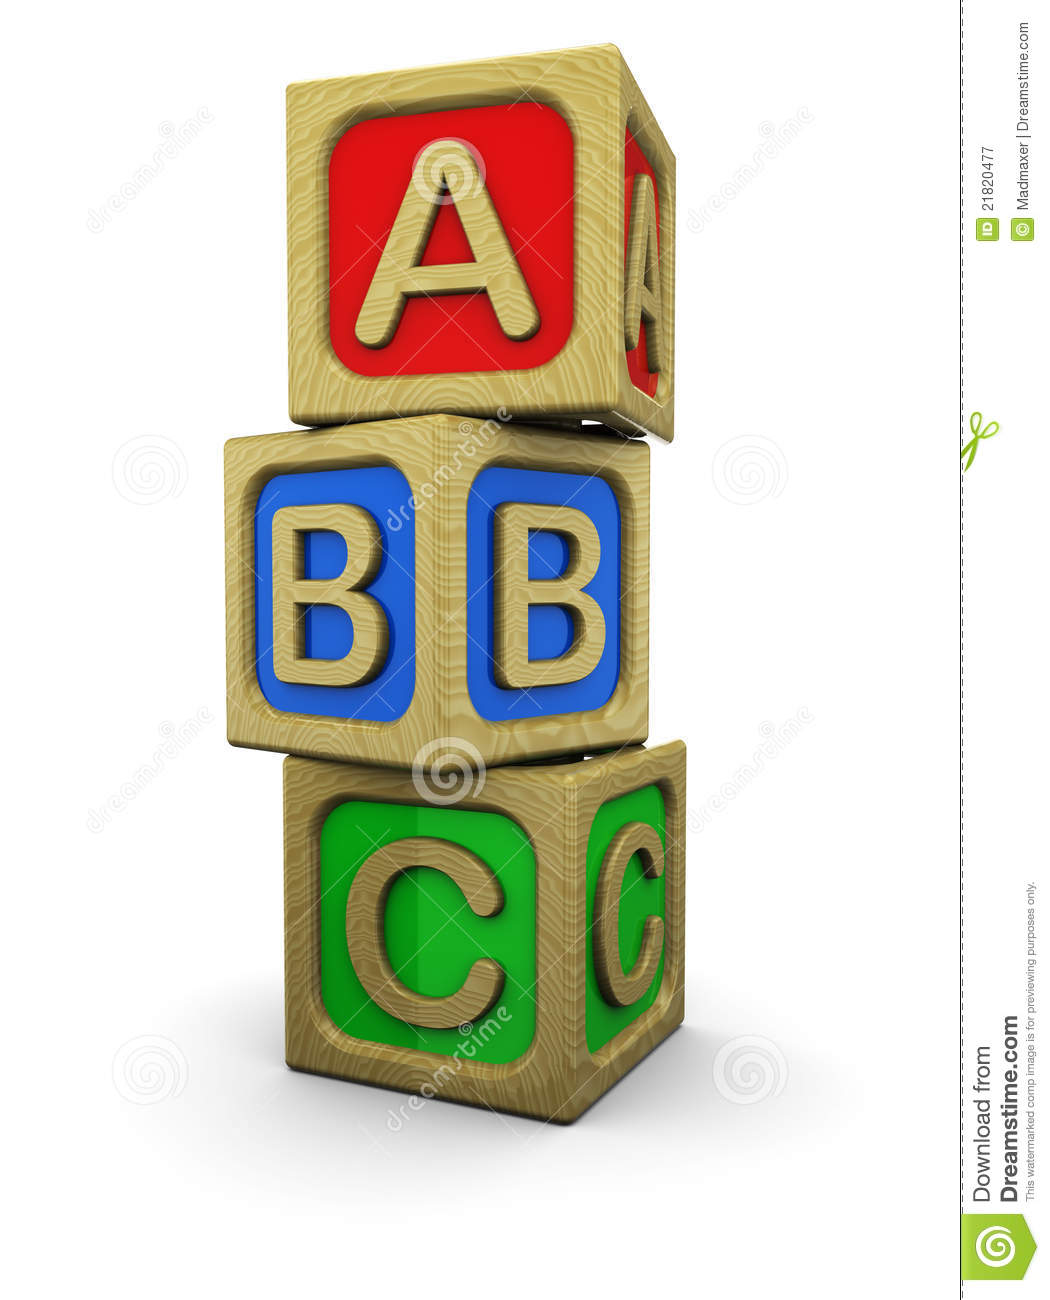 Abc blocks stock illustration. Image of early, preschool ...